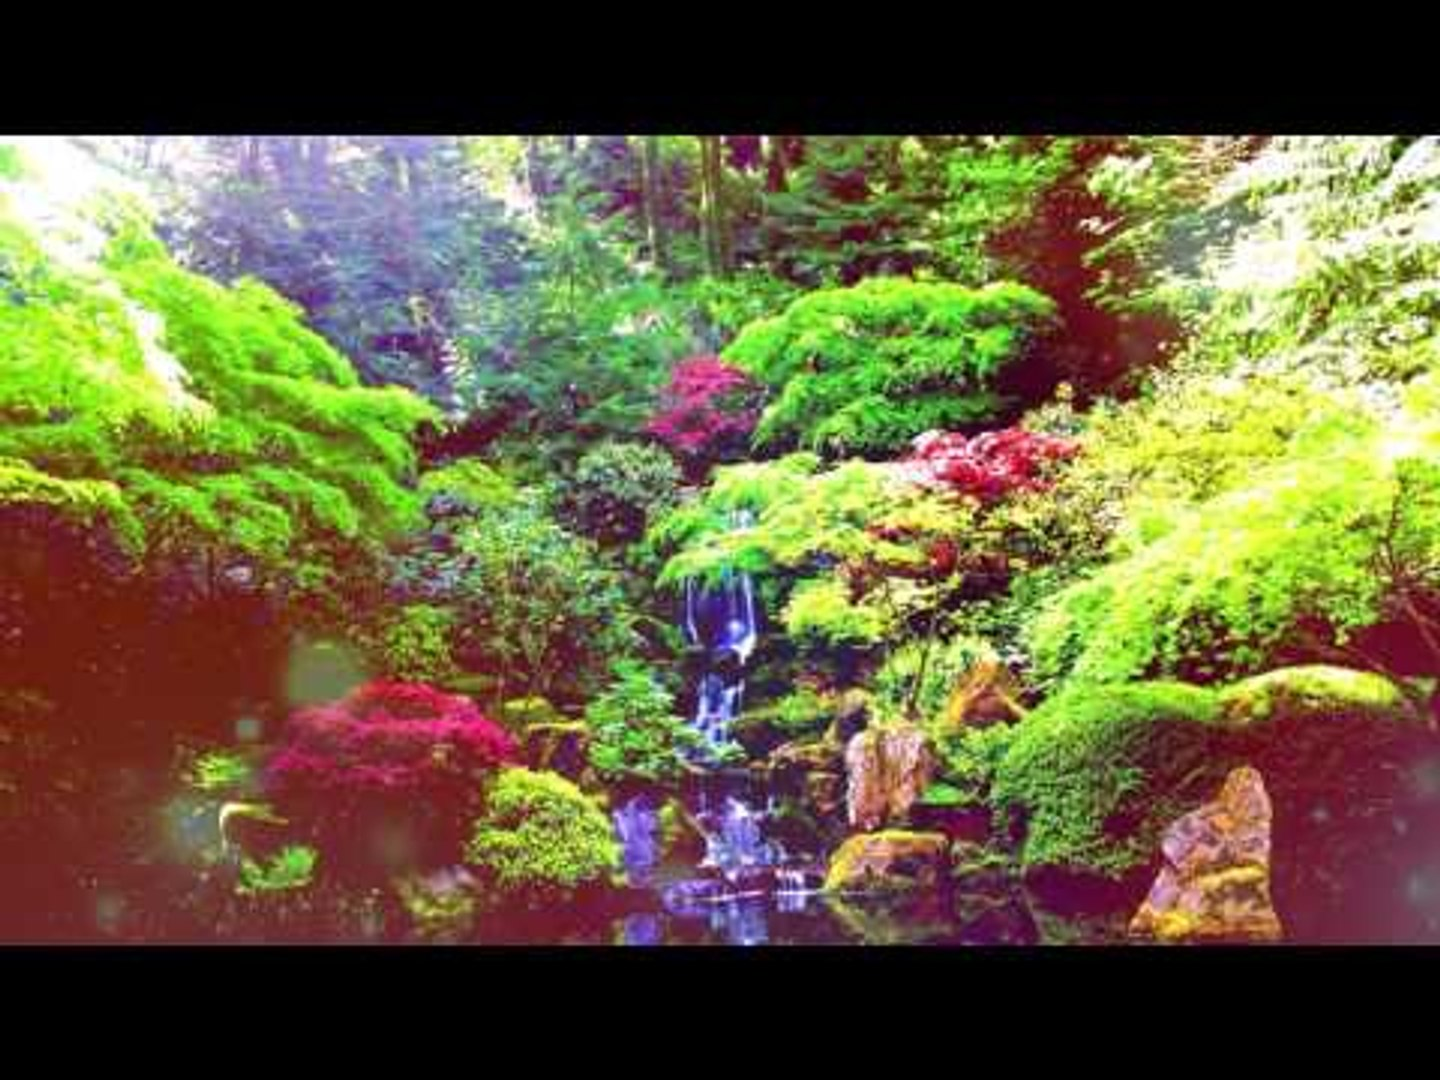 Relaxing Soothing Music - Inner Peace, Forest Relax Music, Meditation Music, Nature Sounds